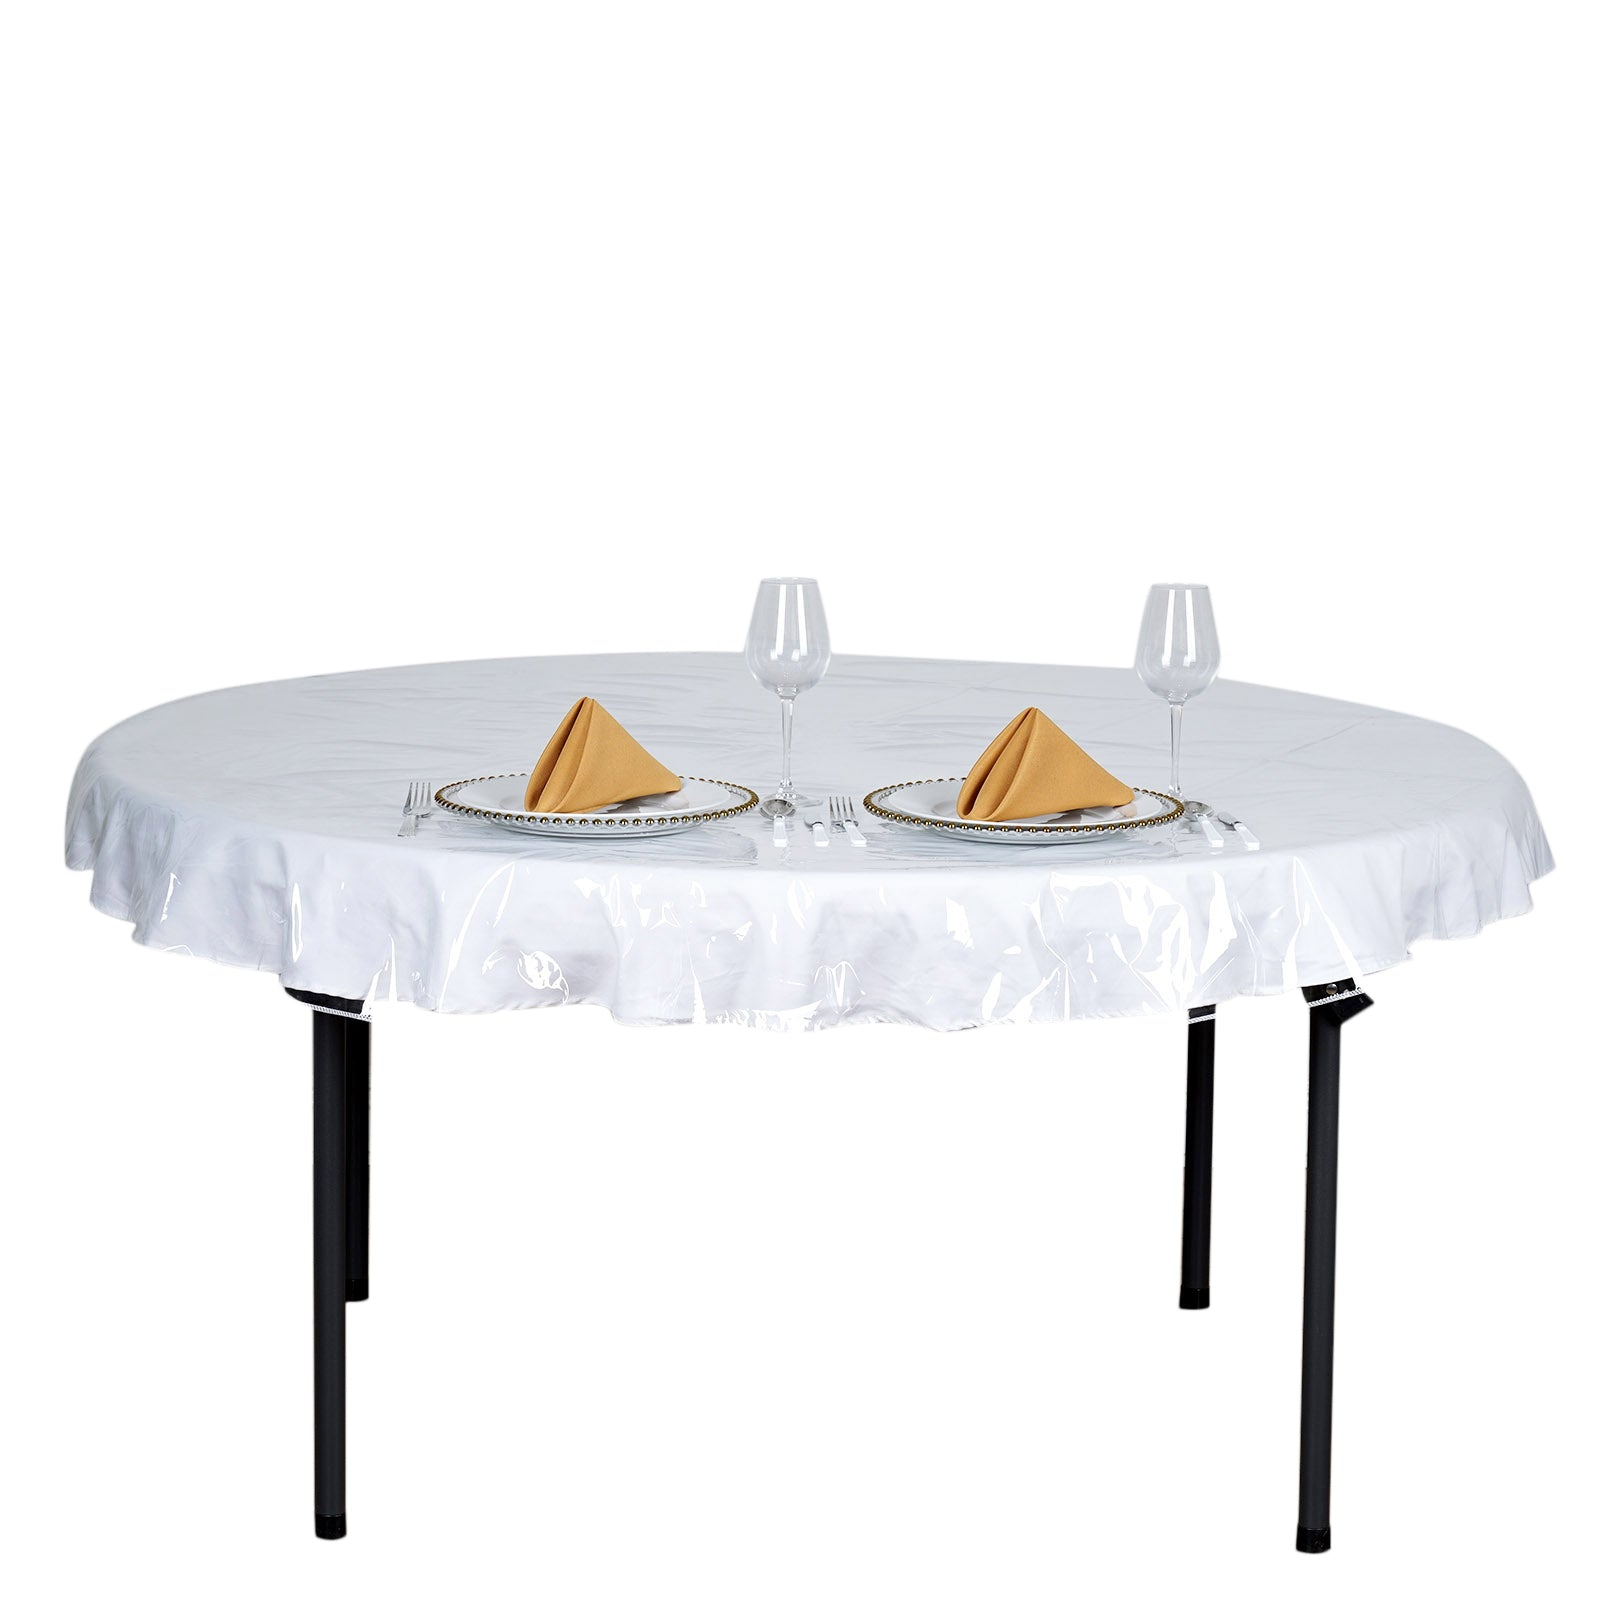 70 Clear 10 Mil Thick Eco Friendly Vinyl Waterproof Tablecloth Pvc Round Disposable Tablecloth Tableclothsfactory